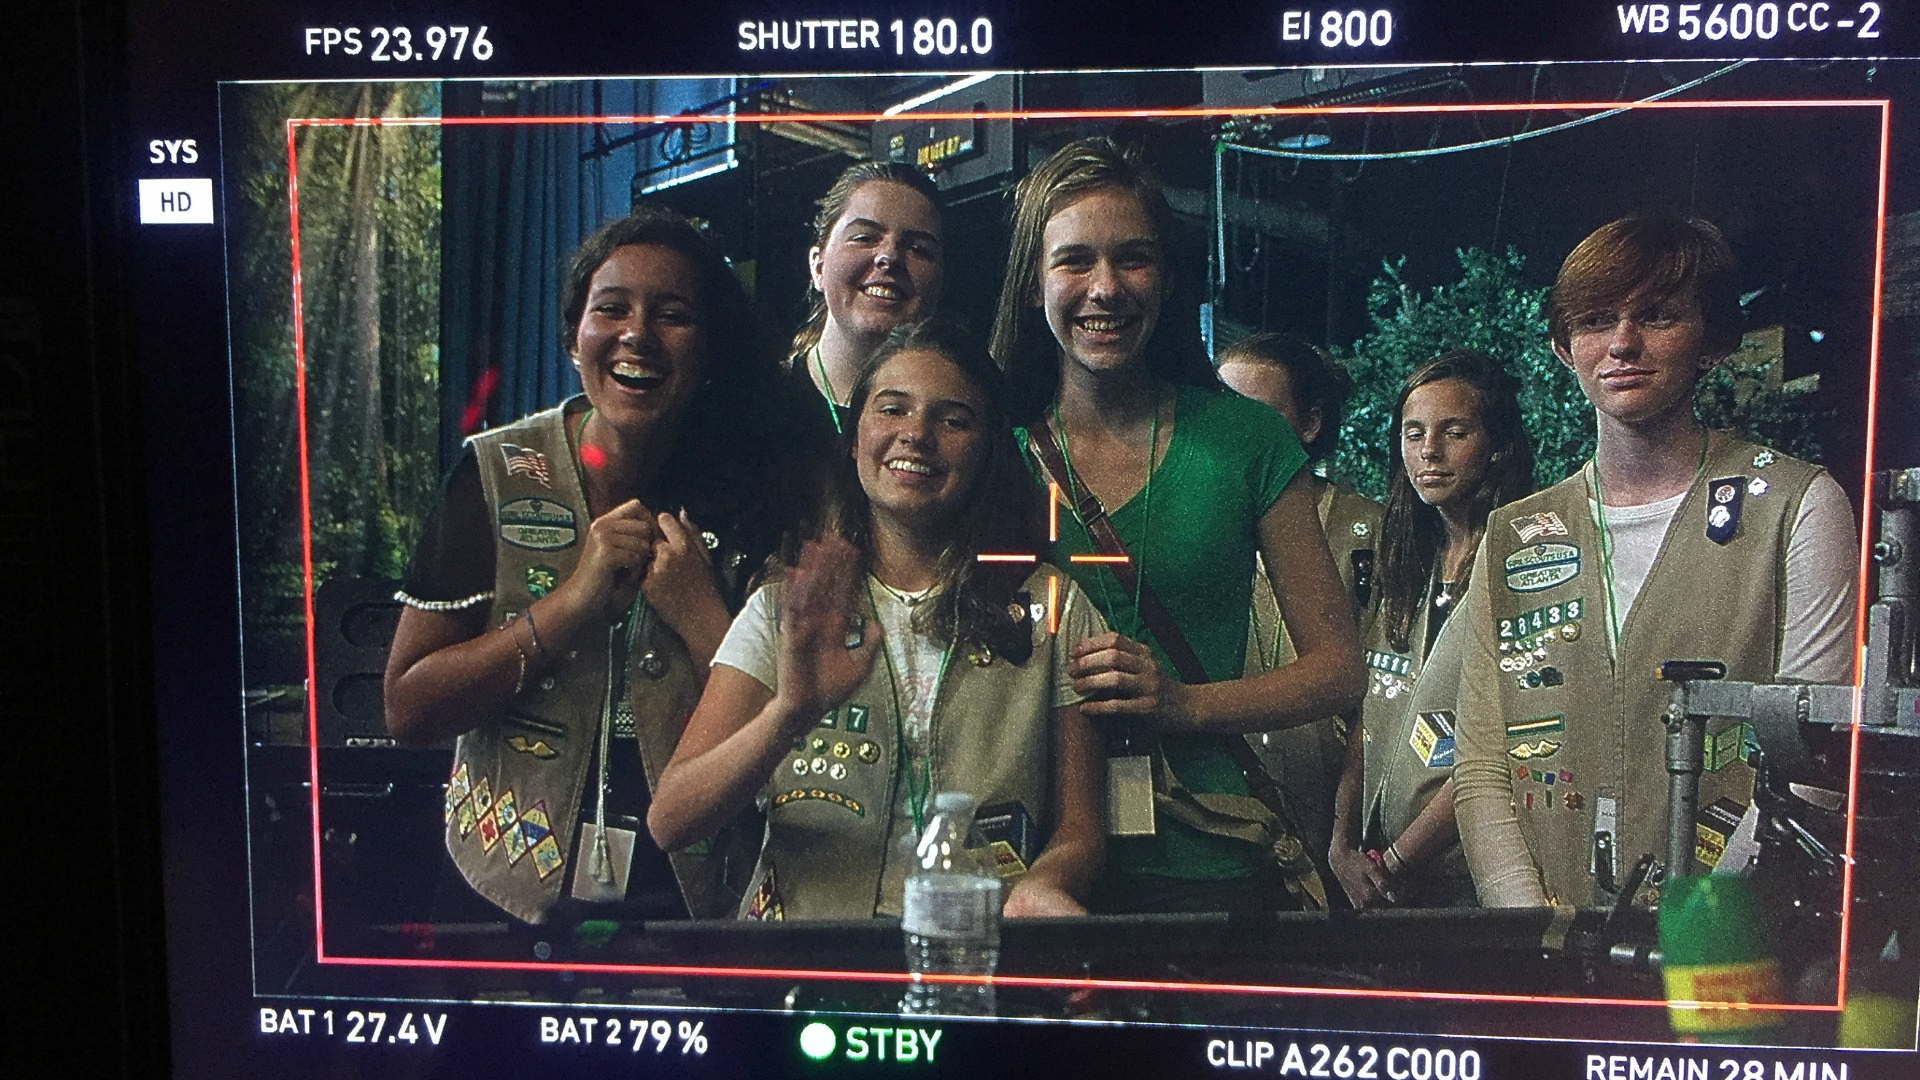 The Girl Scouts get in front of the MacGyver cameras.